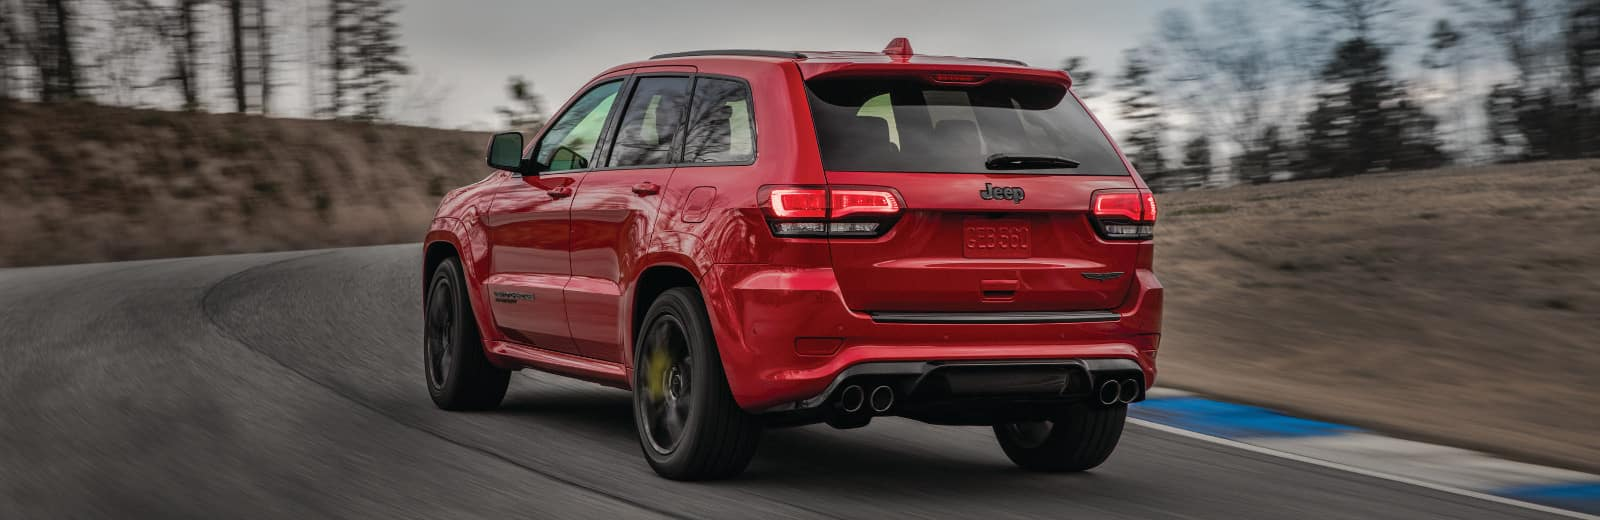 A 2018 Jeep Grand Cherokee driving down an open track